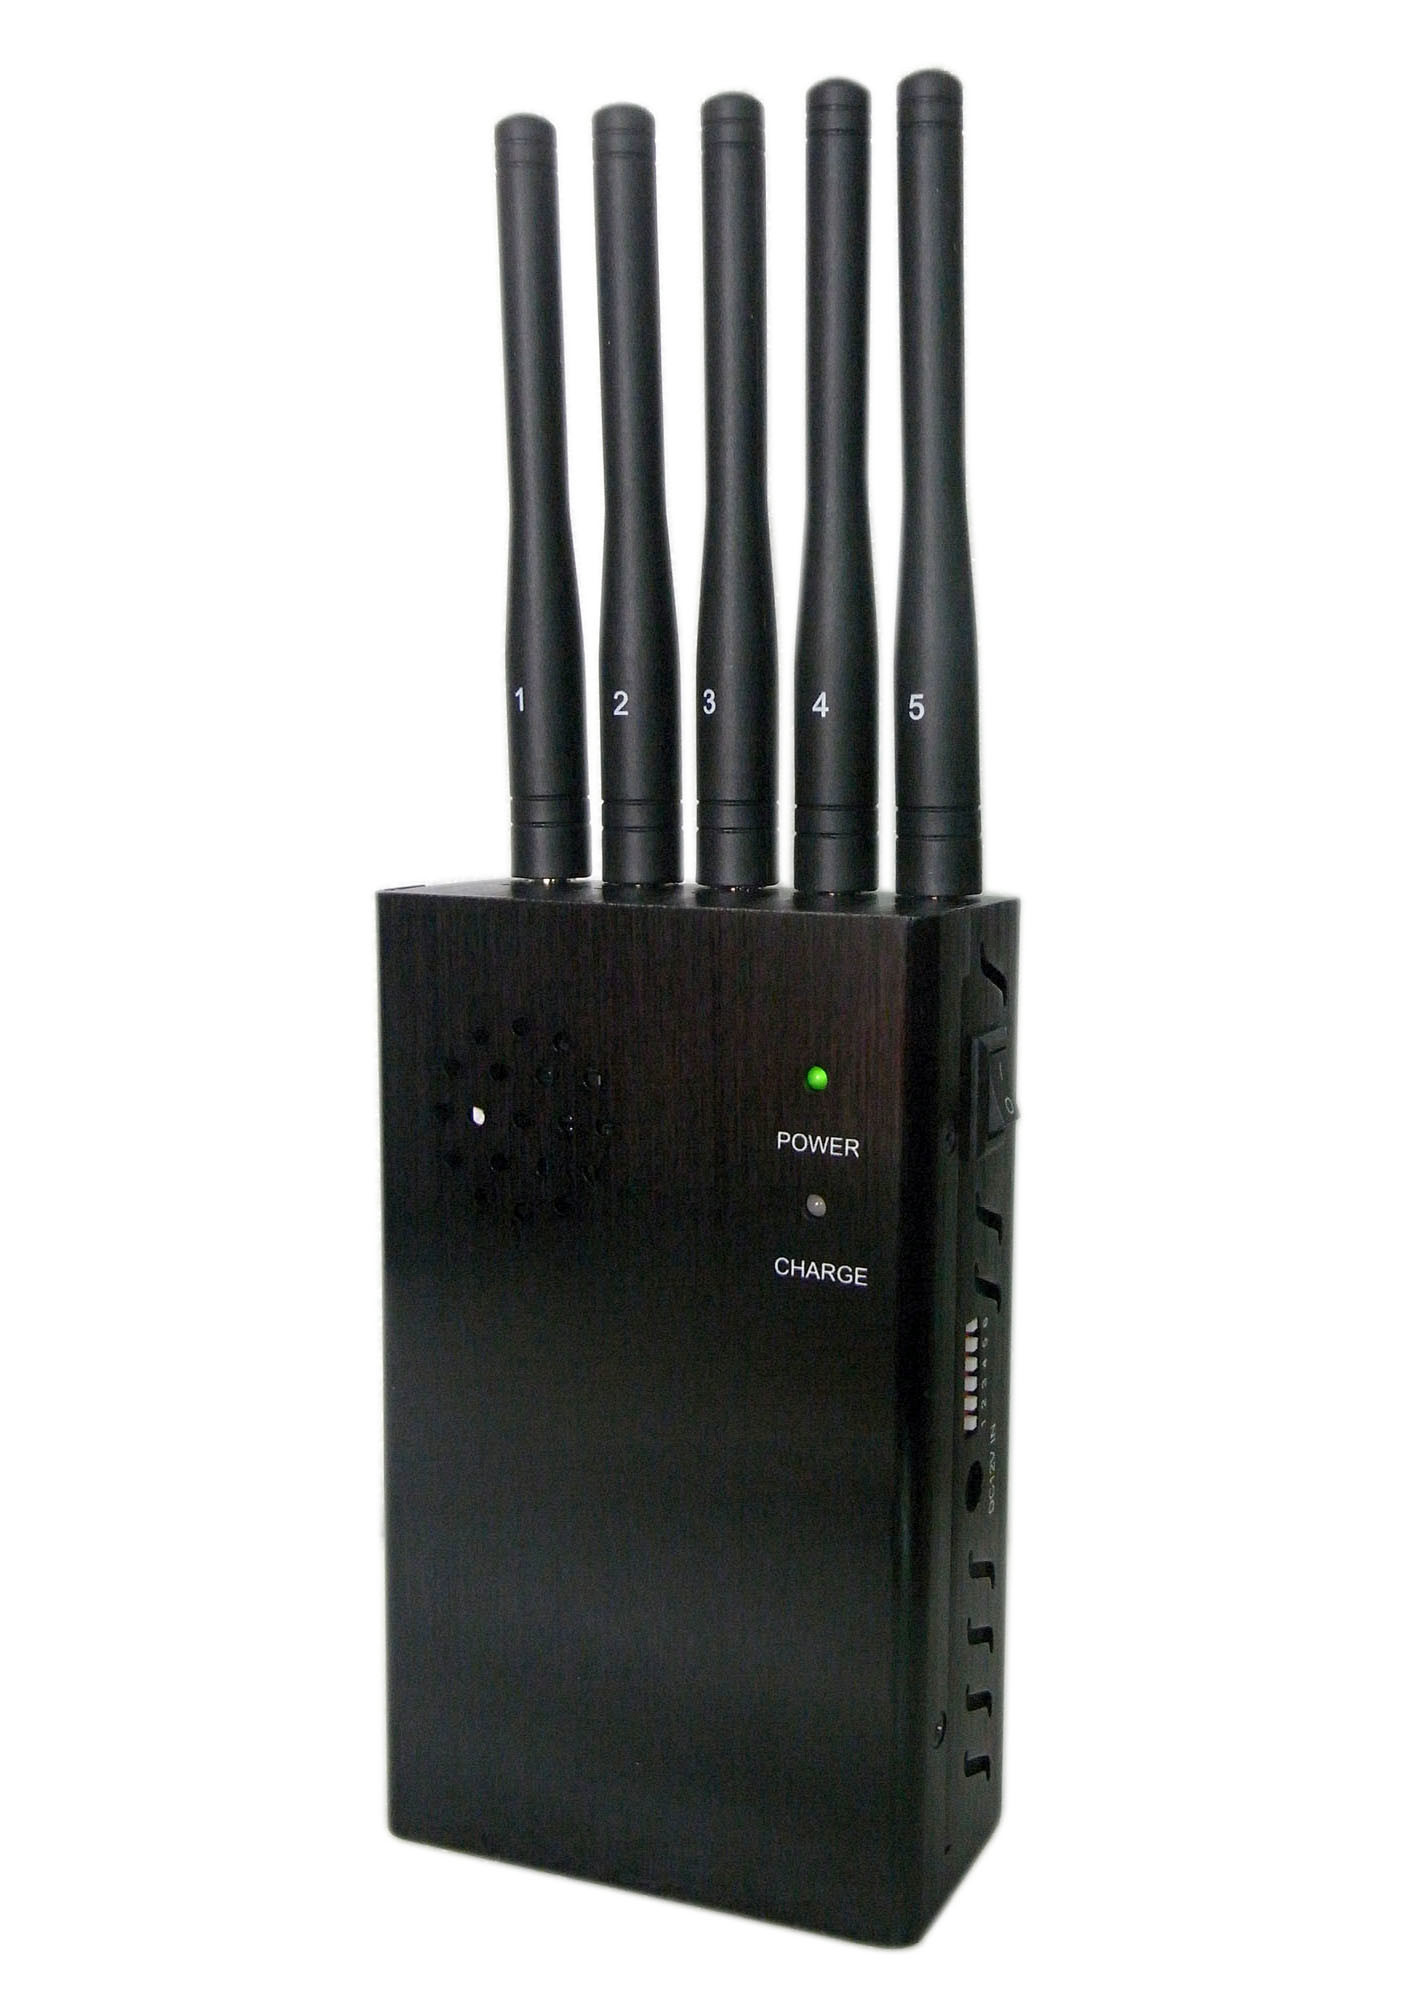 phone jammer diagram for sale - China Wireless 5 Antenna 2g/3G/4G Jammer/Blocker, High Power Handheld Portable Cellphone Wireless Jamer-Omnidirectional Antennas - China 5 Band Signal Blockers, Five Antennas Jammers